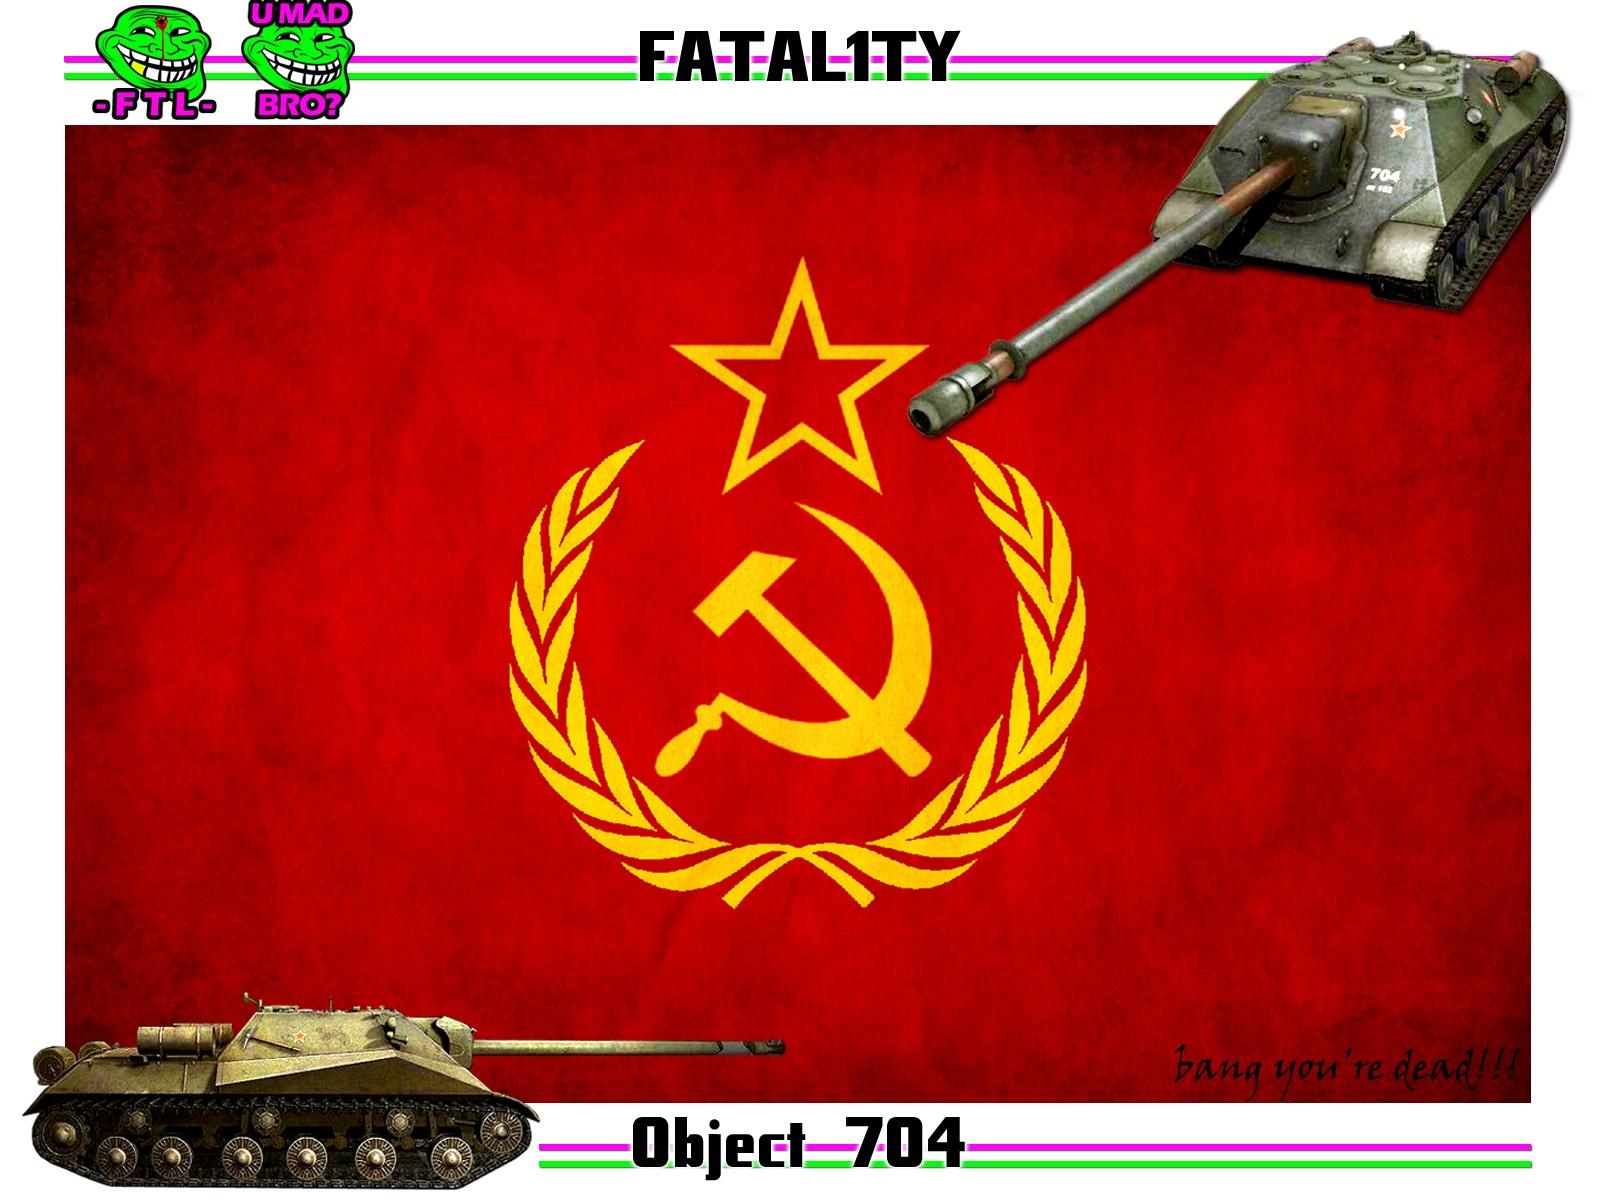 OBJECT 704 TANK DESTROYER FTL FTLTY CLAN WORLD OF TANKS FATALITY FATAL1TY